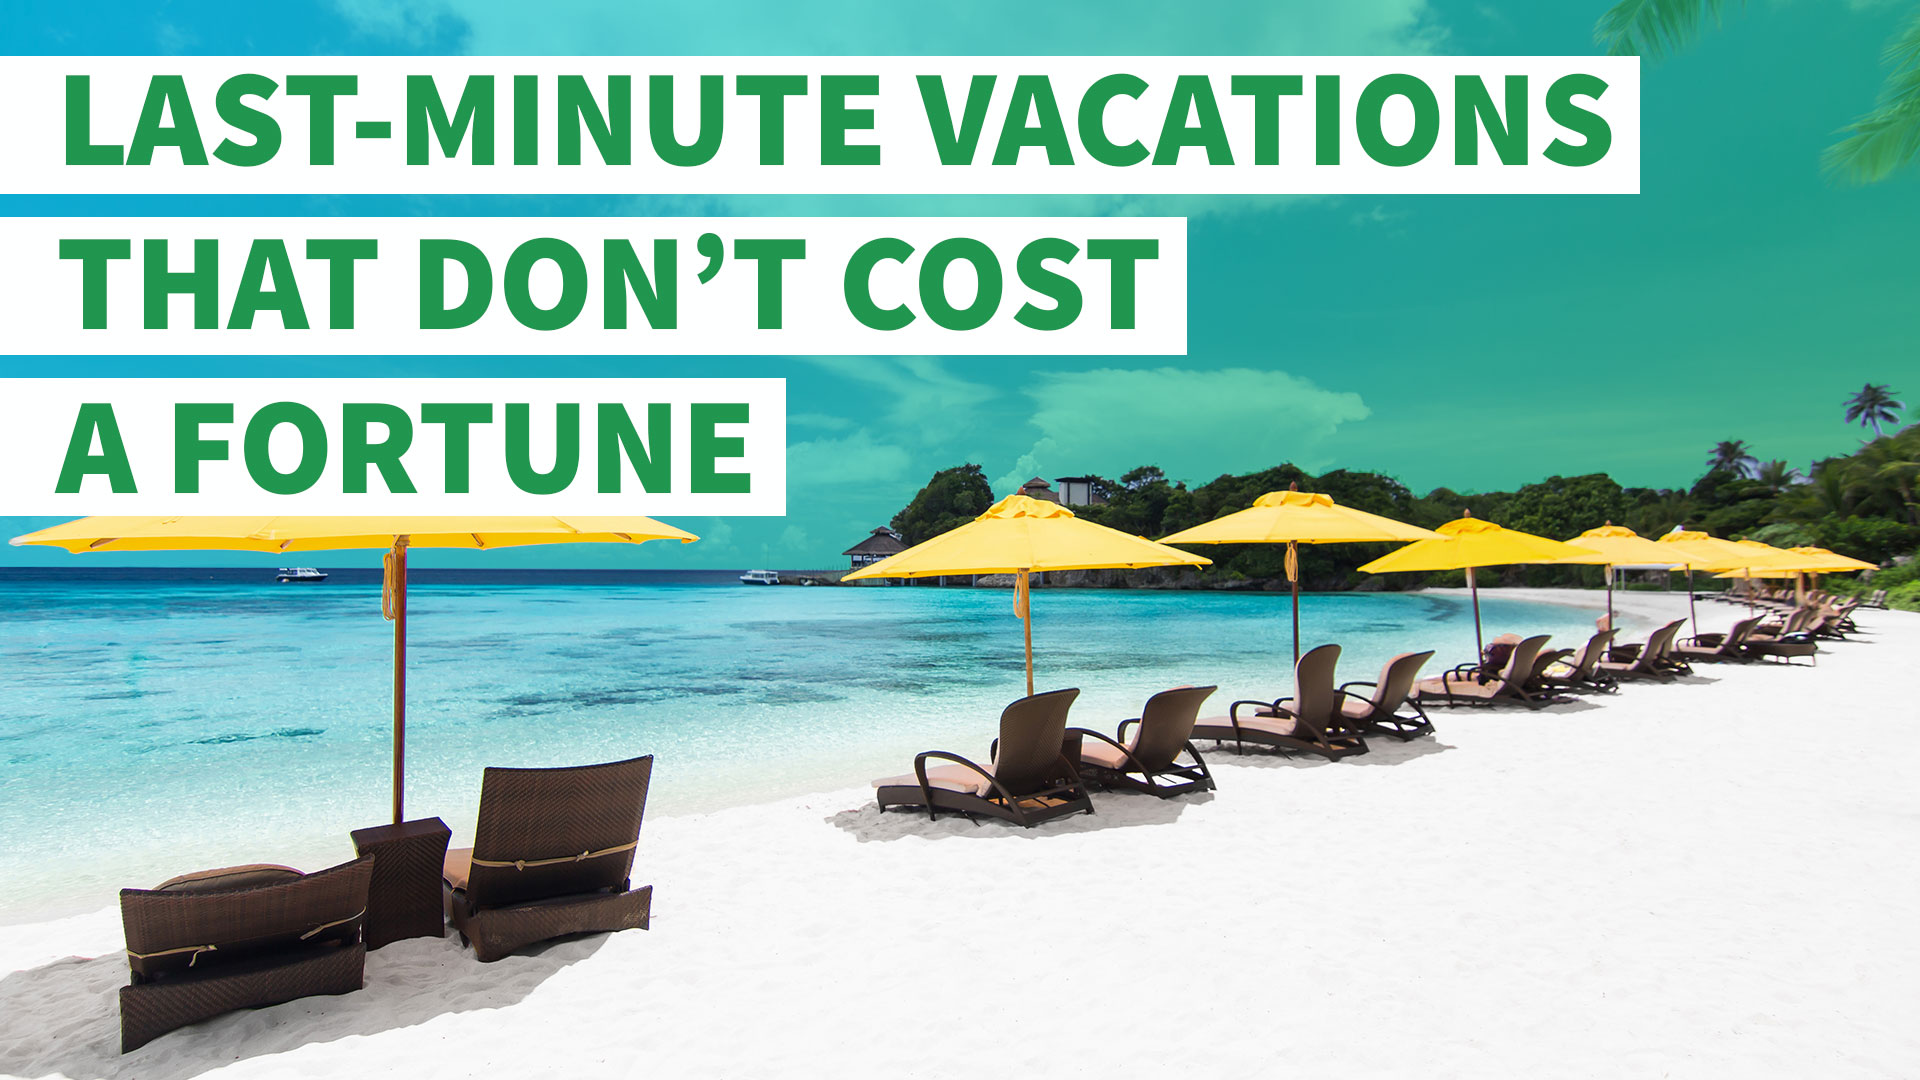 7 LastMinute Vacations That Dont Cost a Fortune